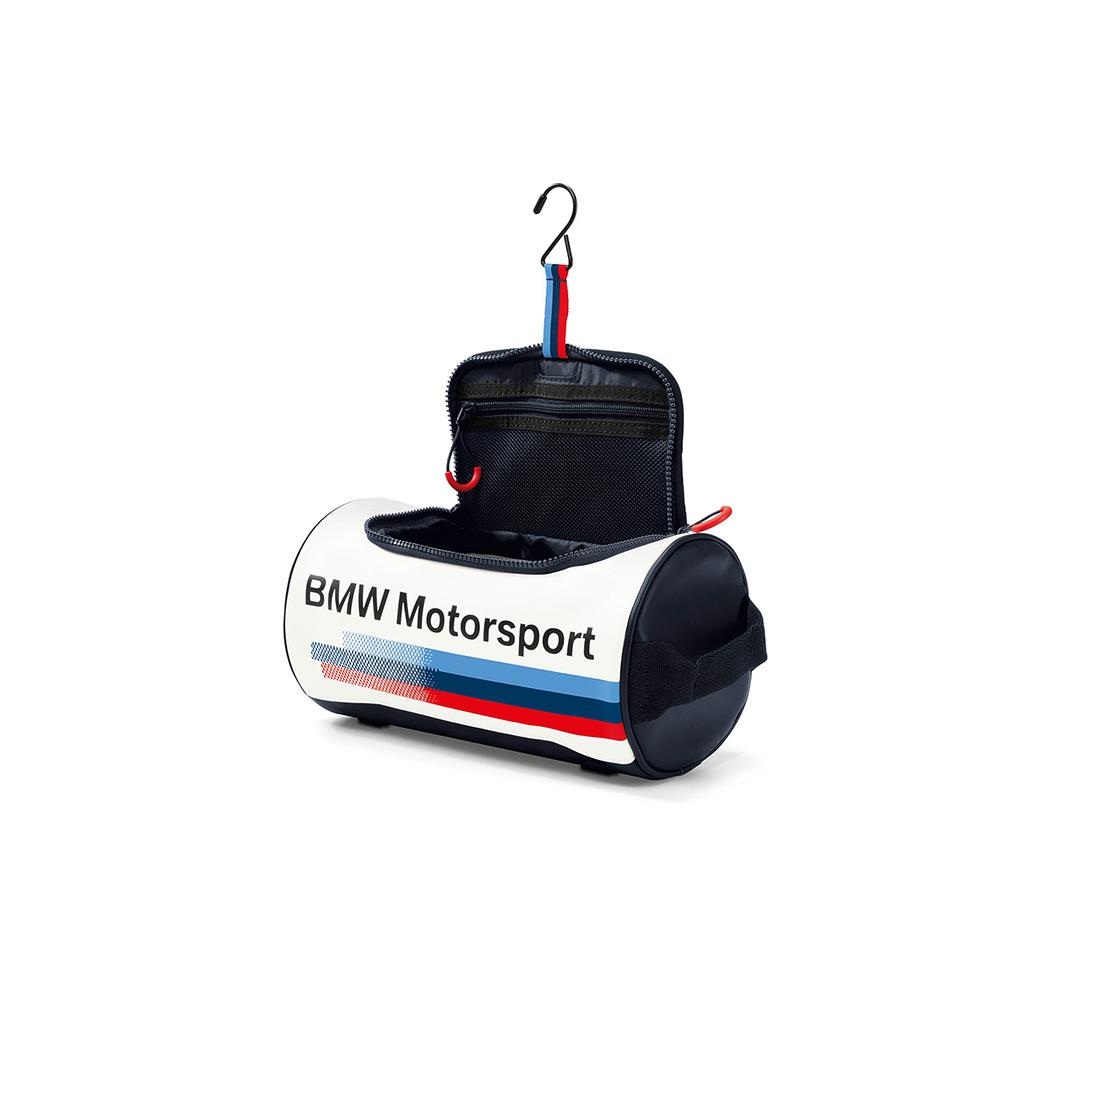 BMW Motorsport Wash Bag